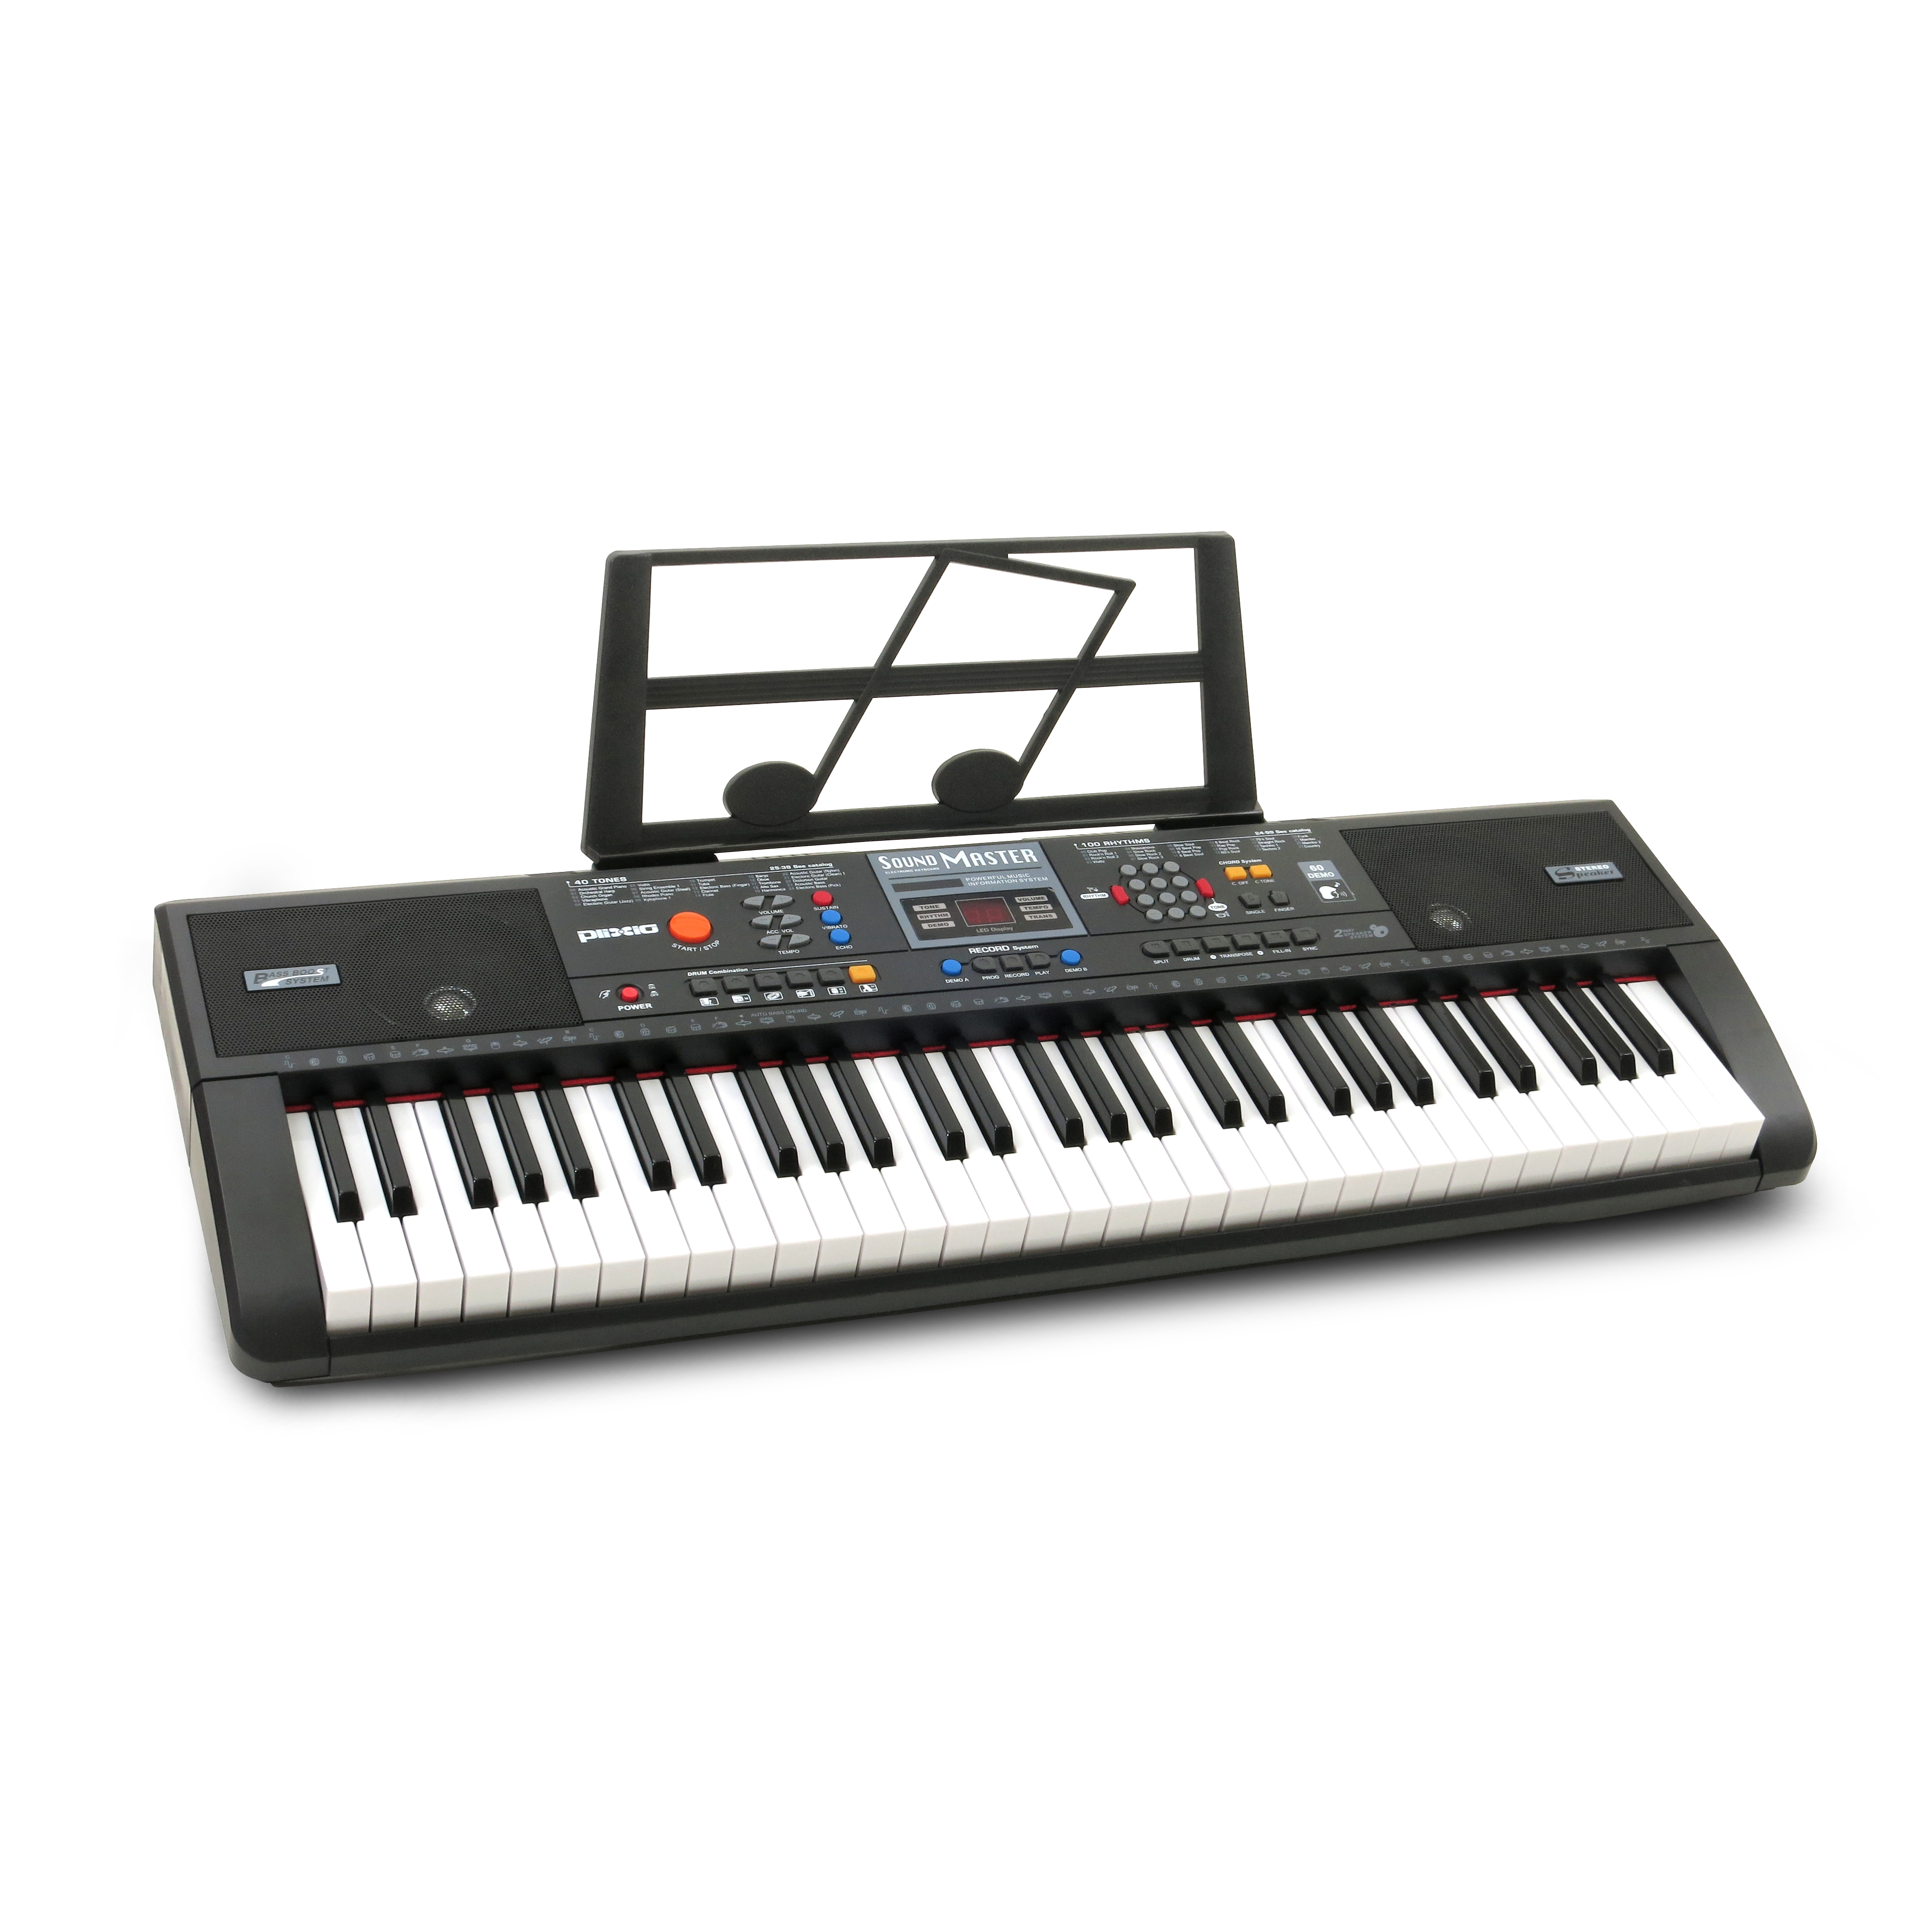 Plixio Piano Keyboard with 61 Keys and Music Sheet Stand – Portable Beginners Electric Keyboard